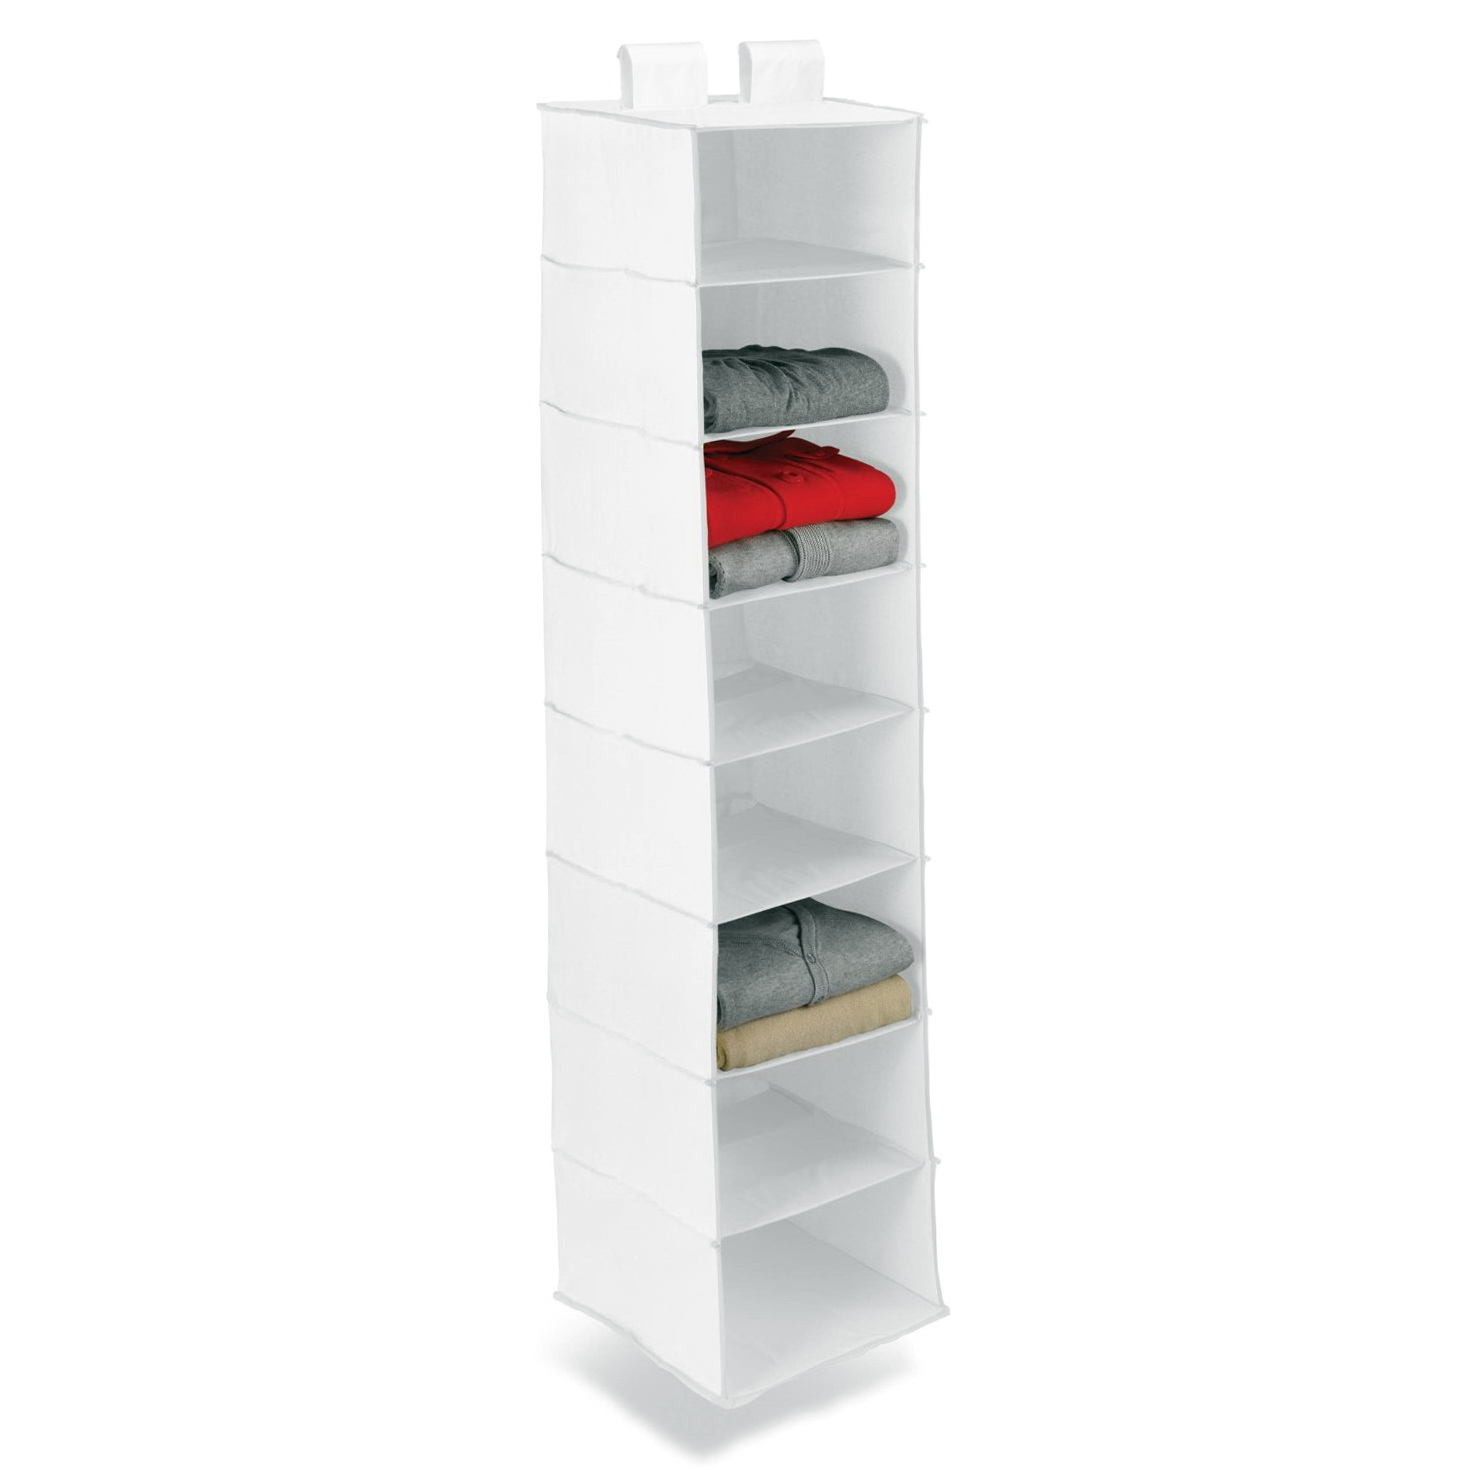 Target Store Double Hanging Closet Organizers